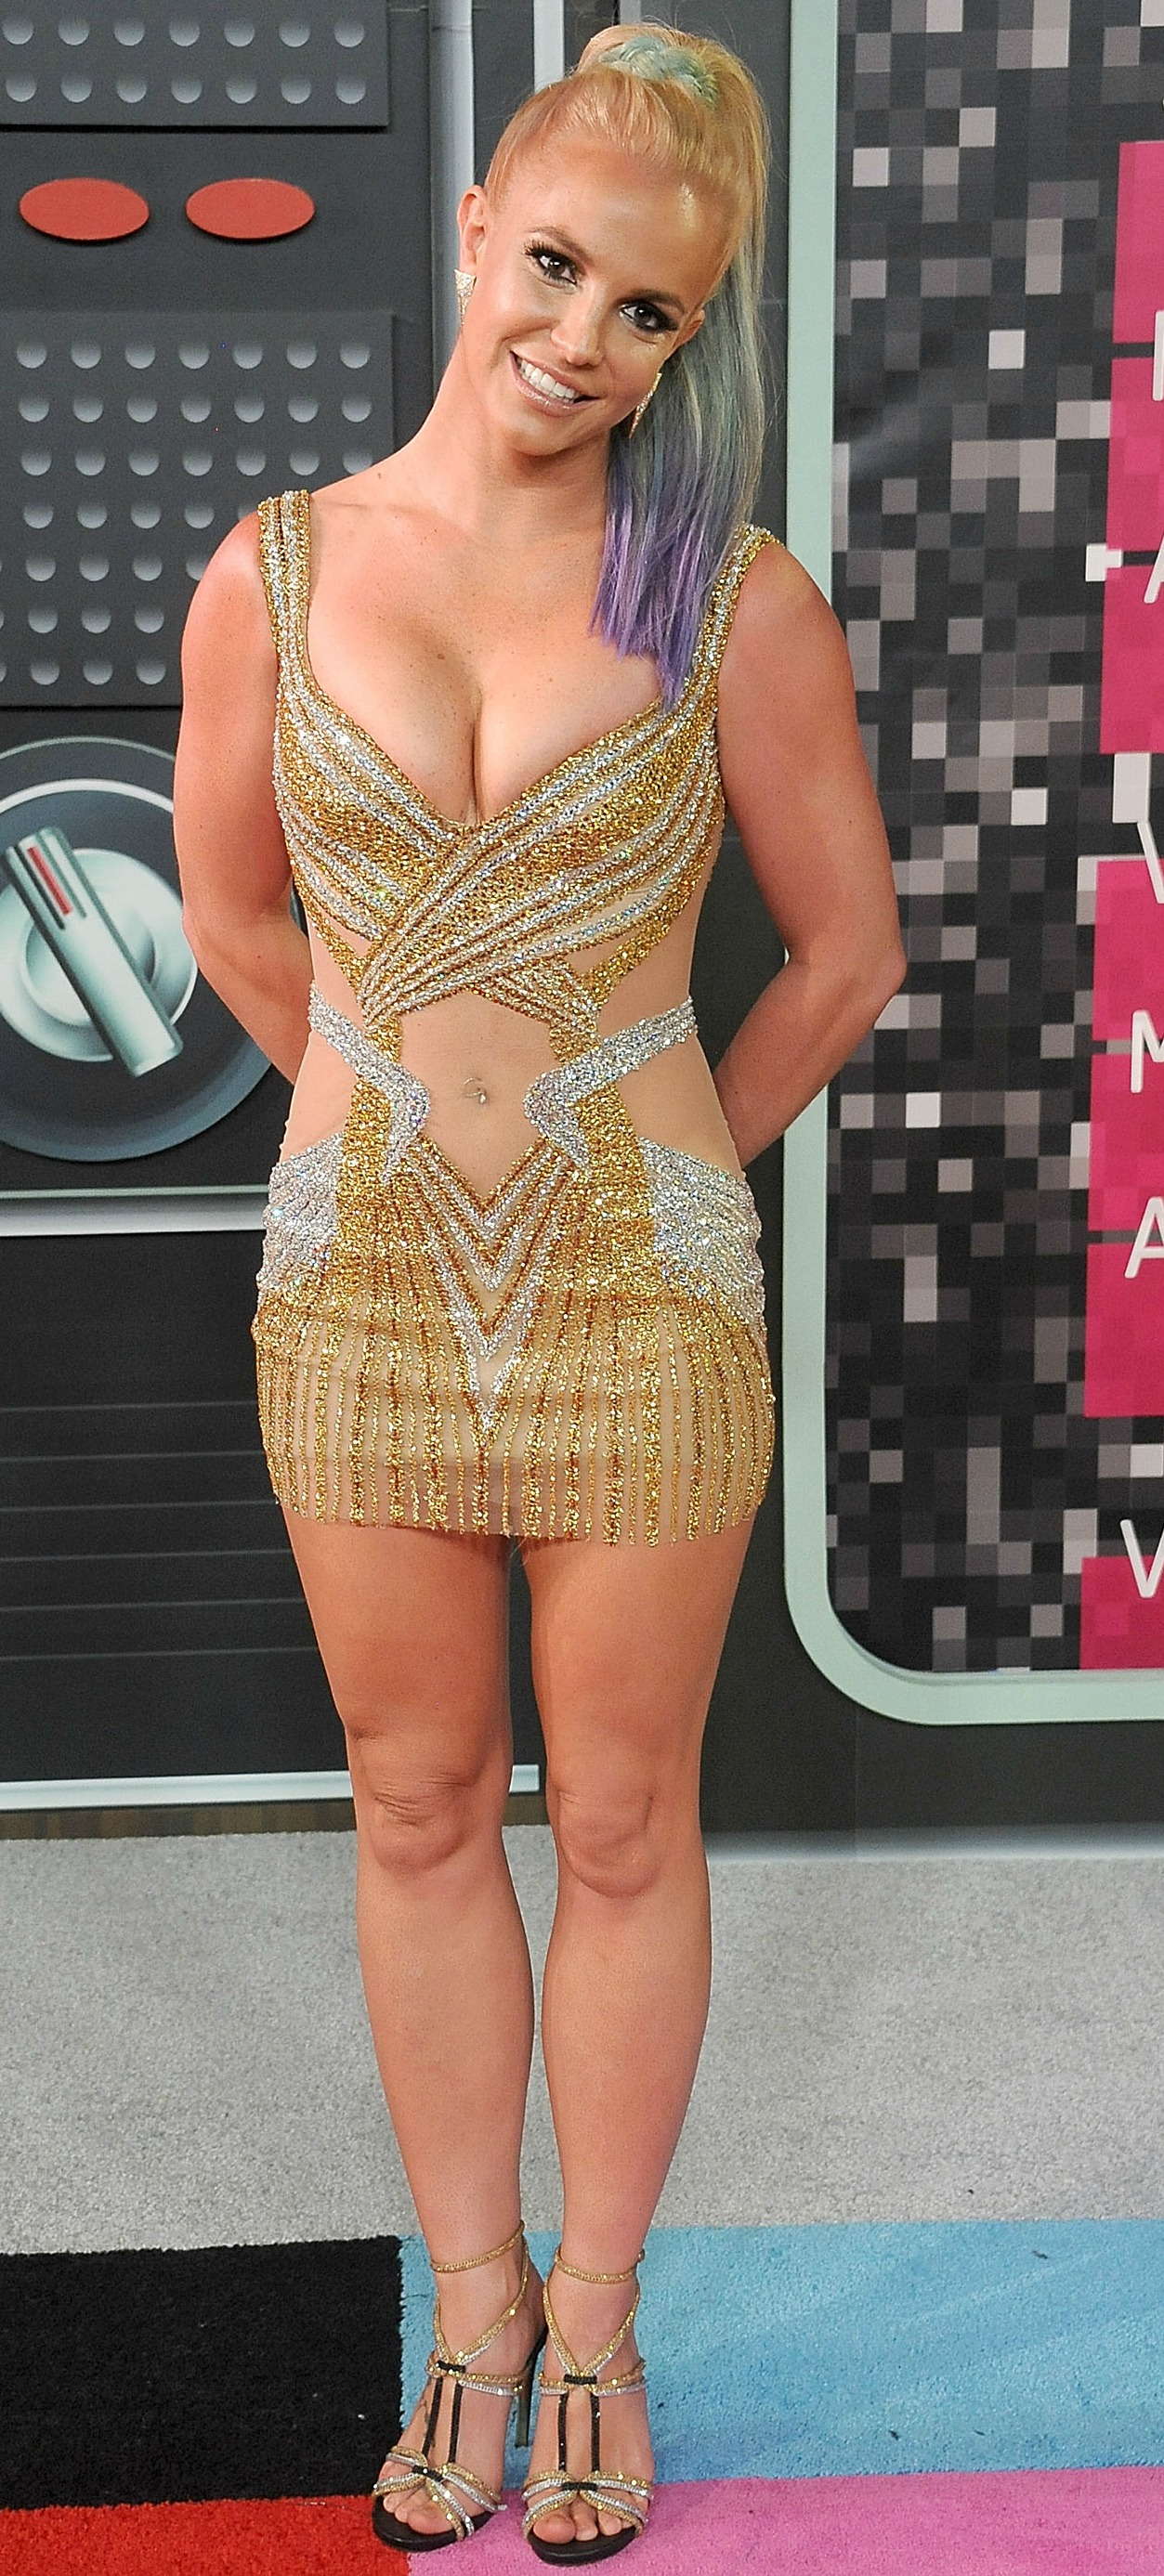 Jenny Miami Tv Topless the 21 most shocking celebrity naked dresses that we're